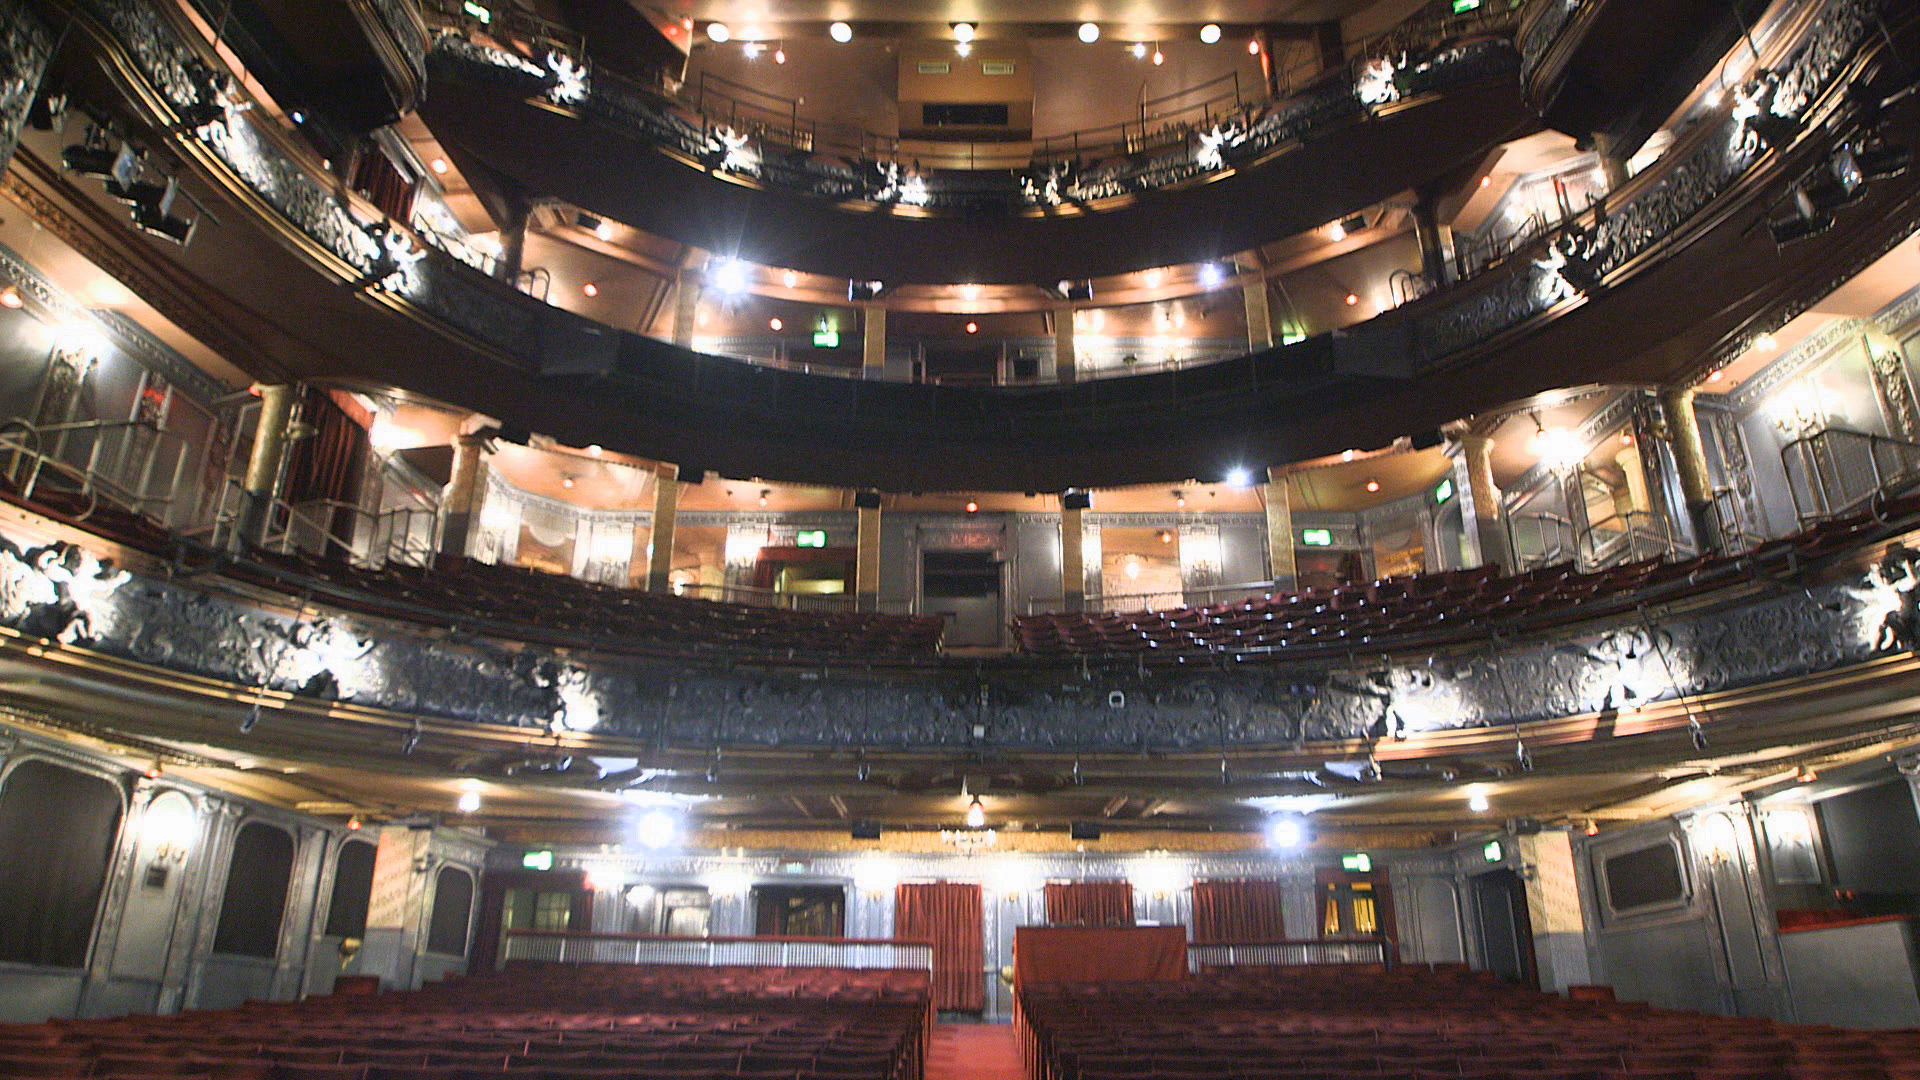 CC Orlando screenshot inside Palace Theatre auditorium